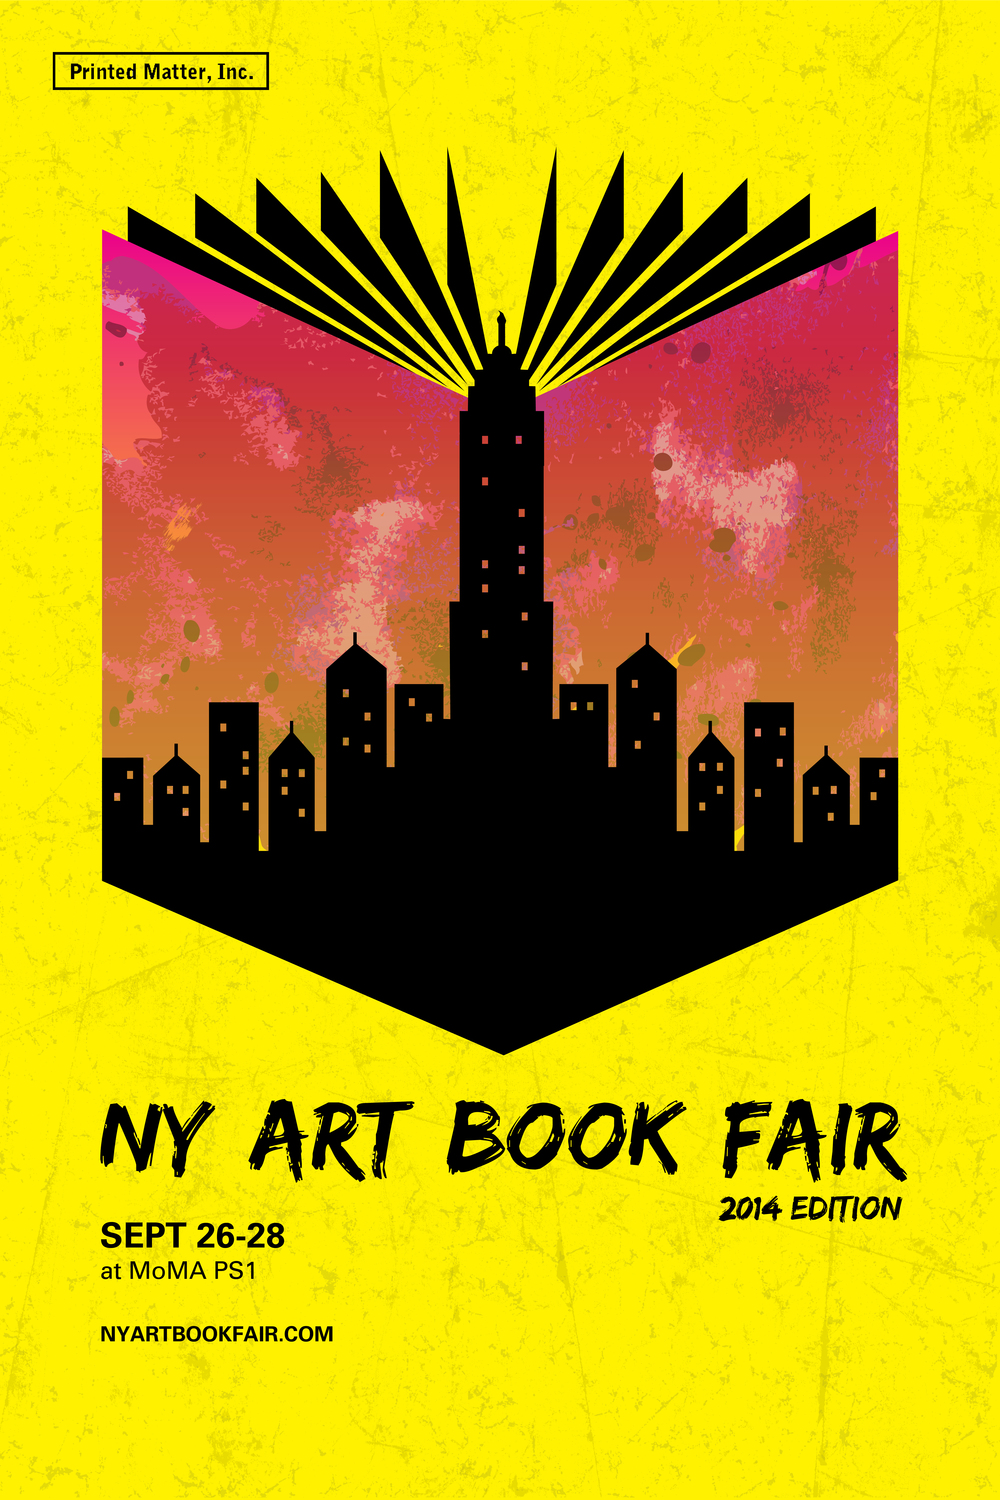 NYARTBOOKFAIR_POSTER_final.jpg